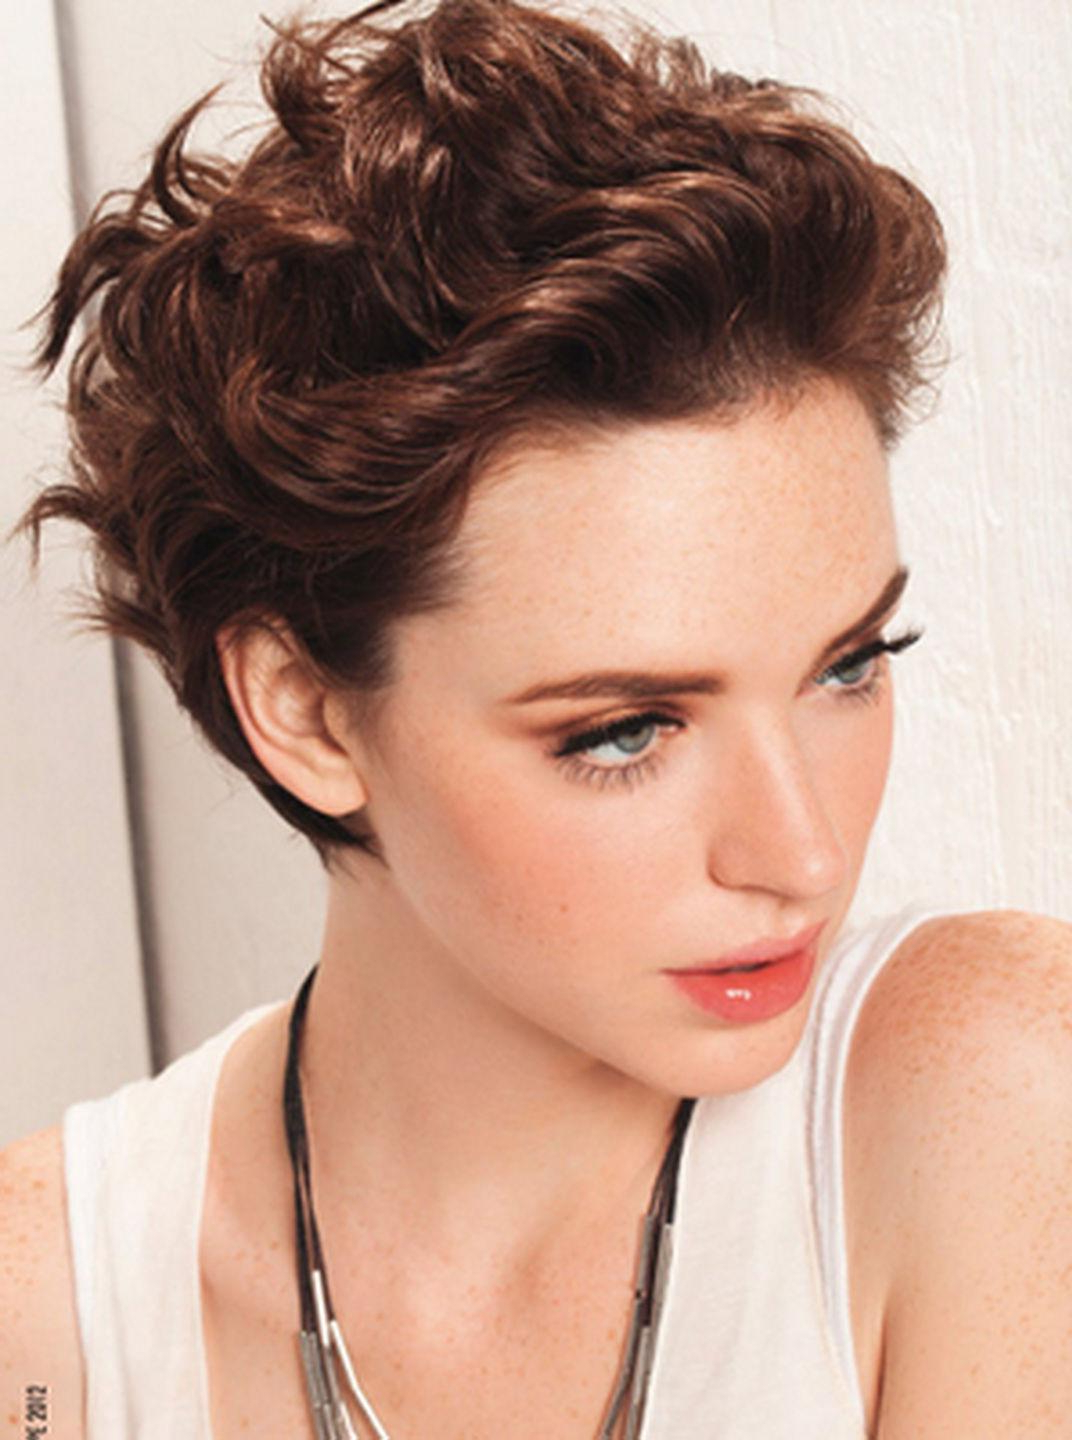 Short Hairstyles For Thick Curly Hair – Leymatson Within Thick Curly Short Haircuts (View 3 of 25)